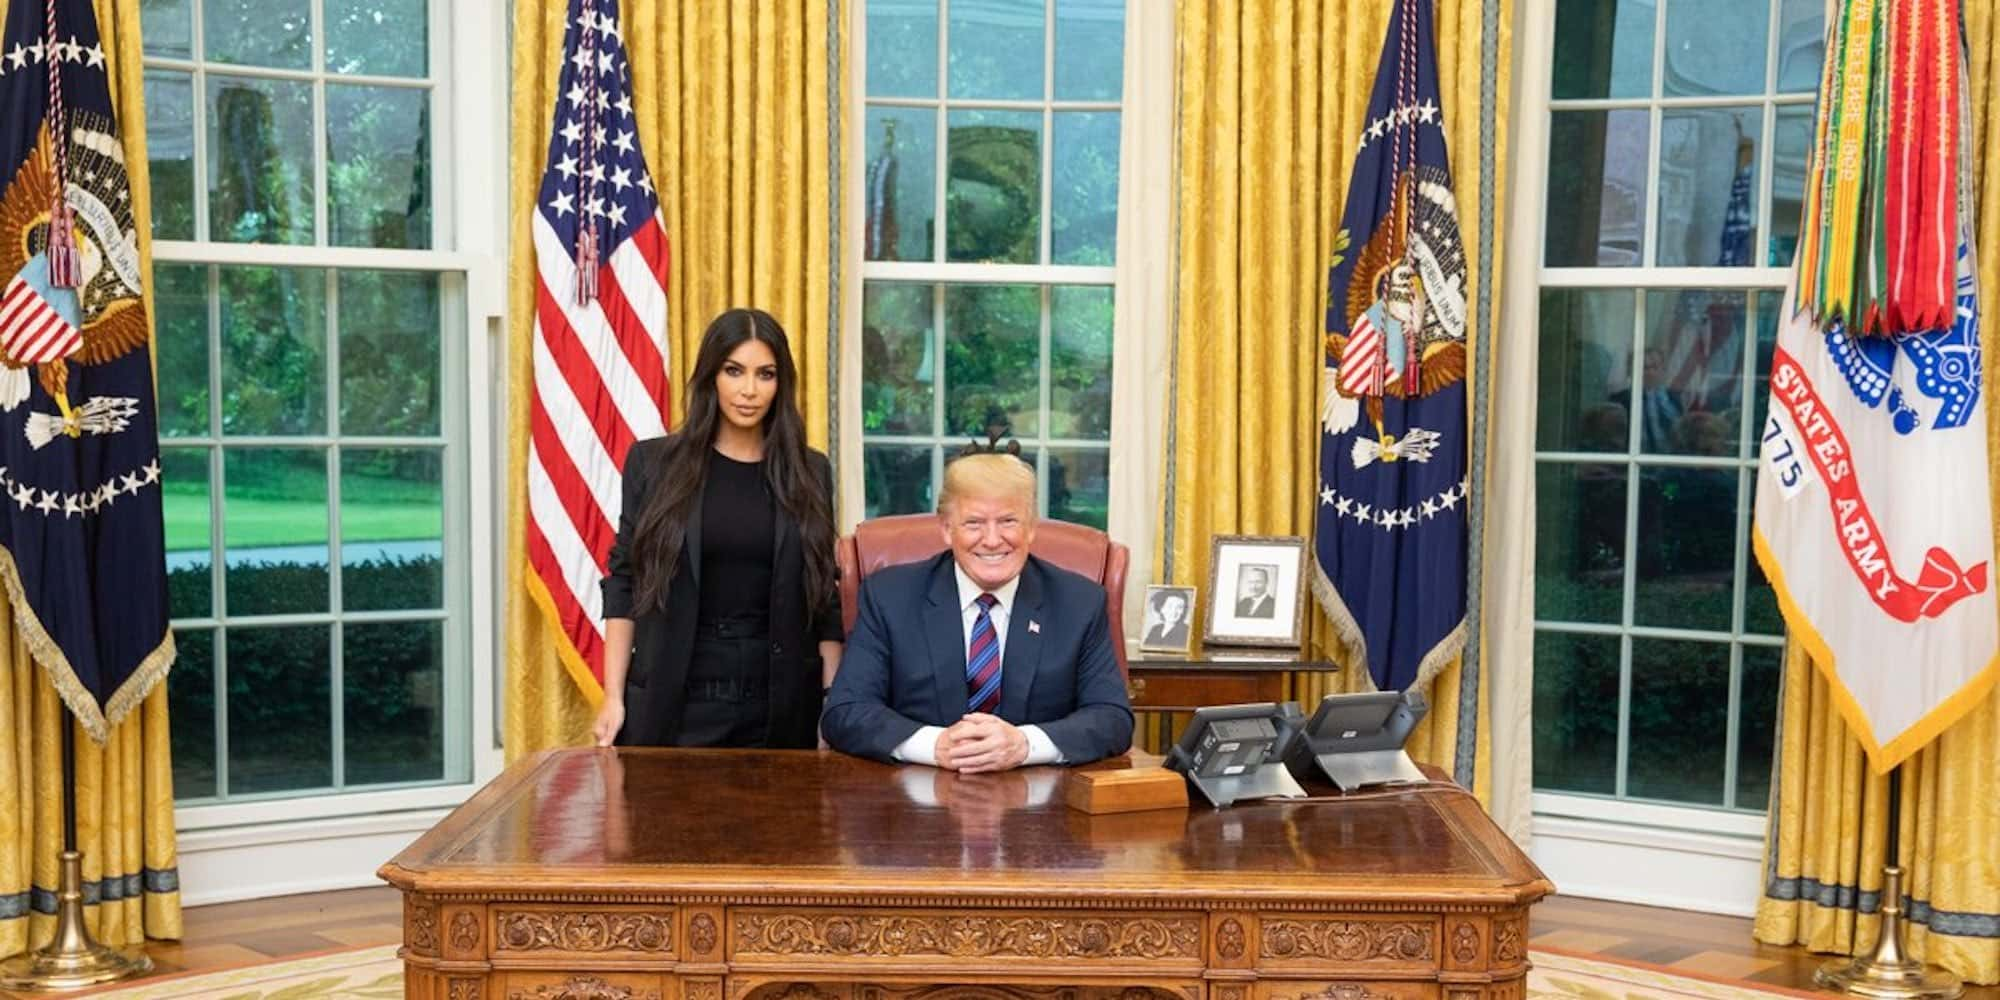 The time when Kim Kardashian met President Donald Trump to talk about prison reform and sentencing (Source: Donald Trump, Twitter)